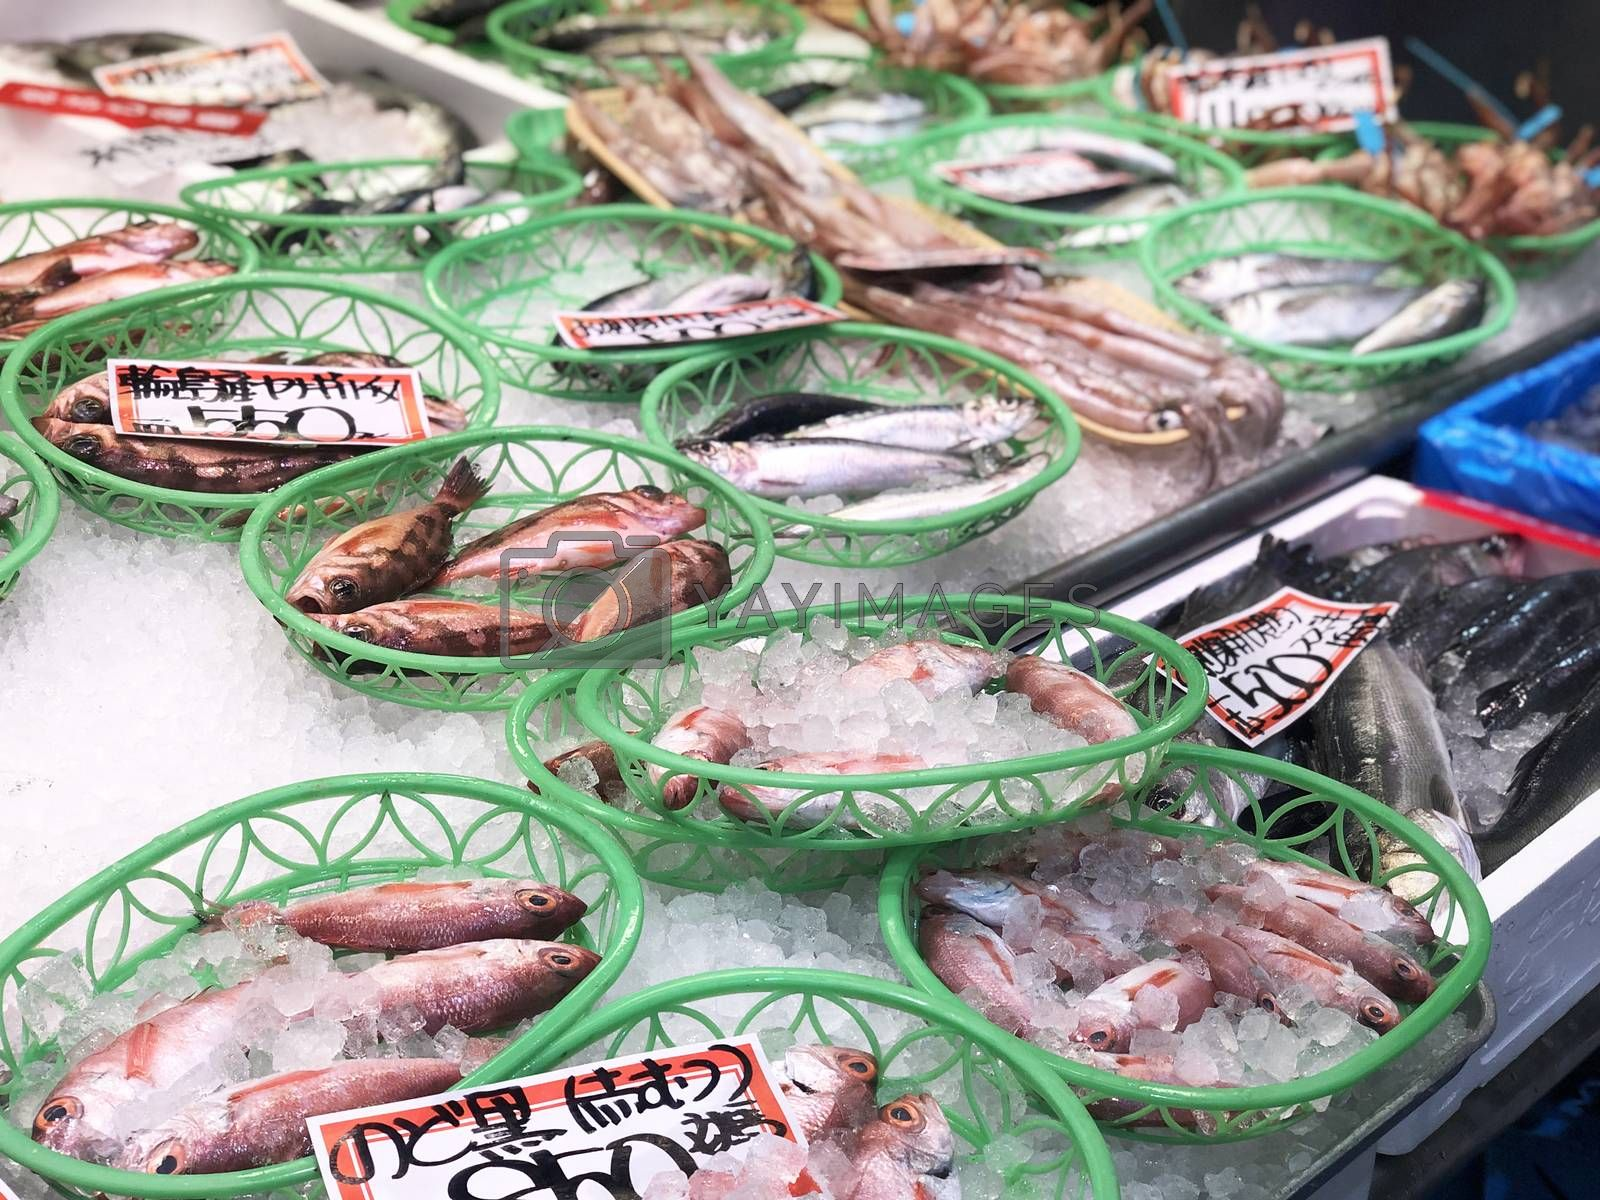 Fresh fish and seafood in fresh market in Tomari Fish Market in Japan